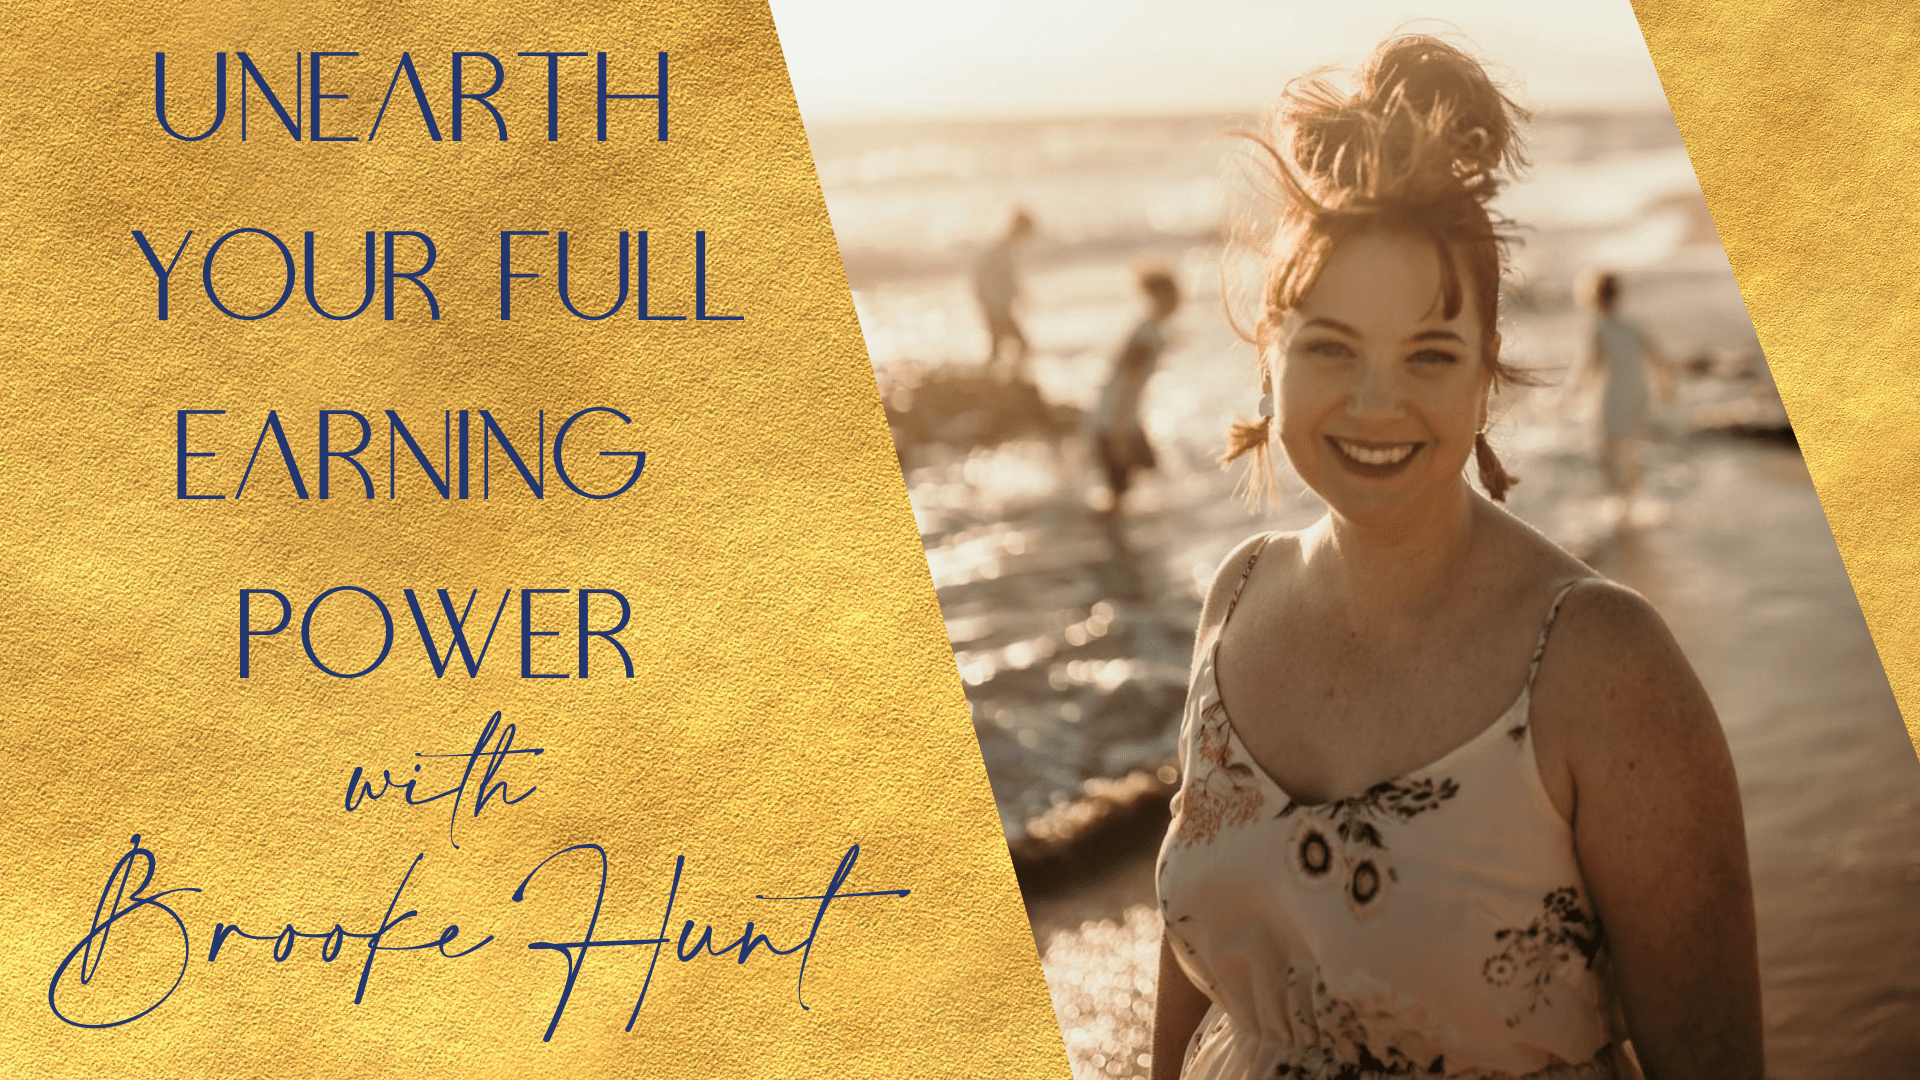 Unearth your full earning power with Brooke Hunt